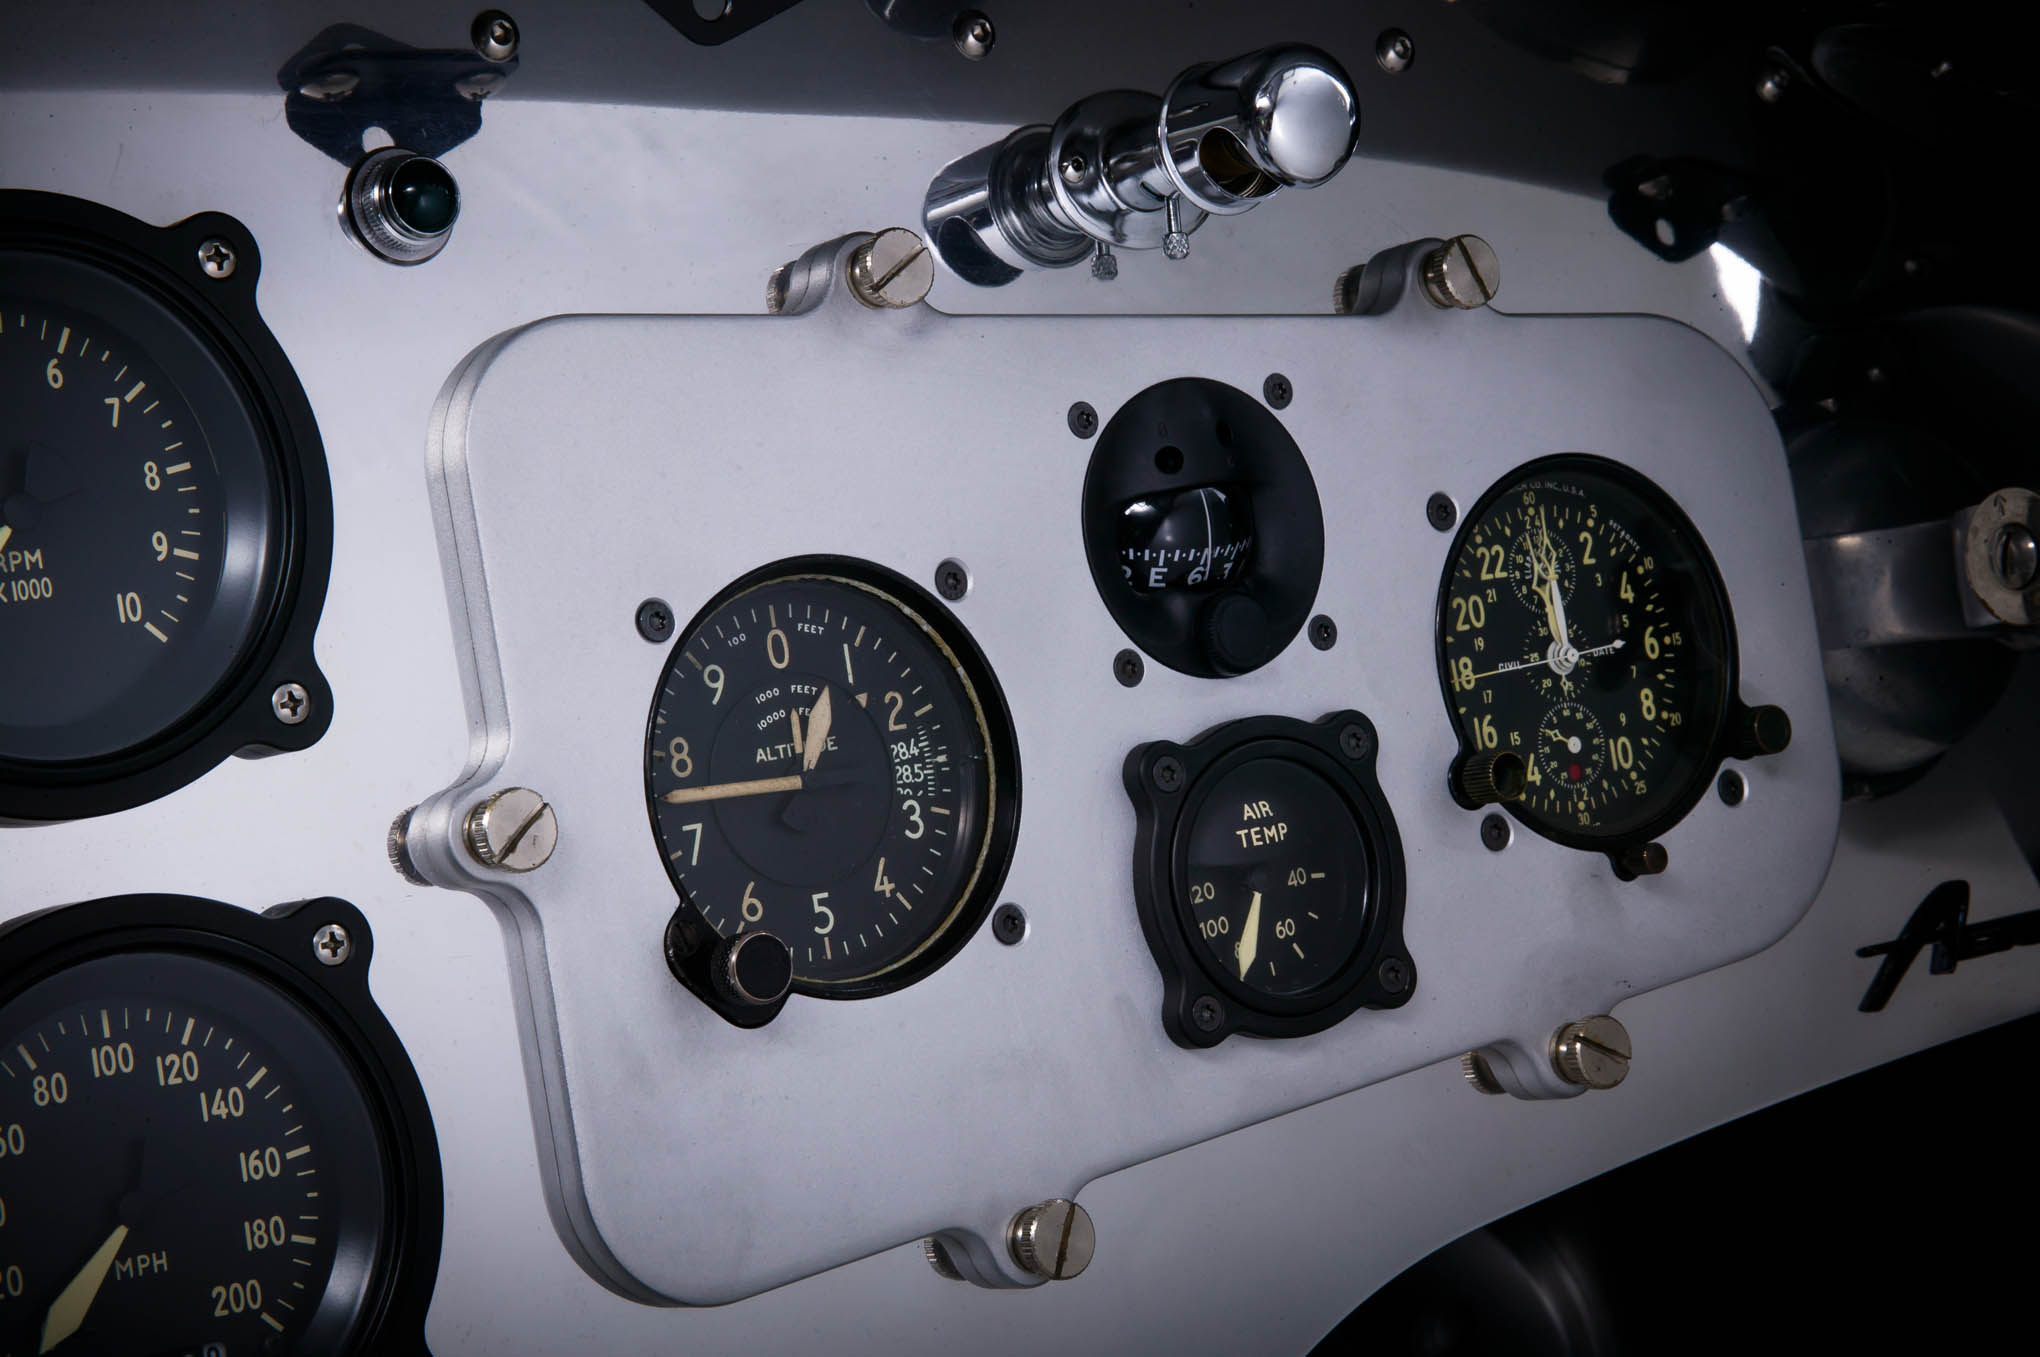 The Moal-built aluminum panels are reminiscent of aircraft style, then outfitted with Classic Instruments custom Moal Bomber gauges. You gotta drool over the temp gauge (water and oil), left and right boost gauge, oil psi, and a pair of EGT (exhaust gas temperature) built into one unit.